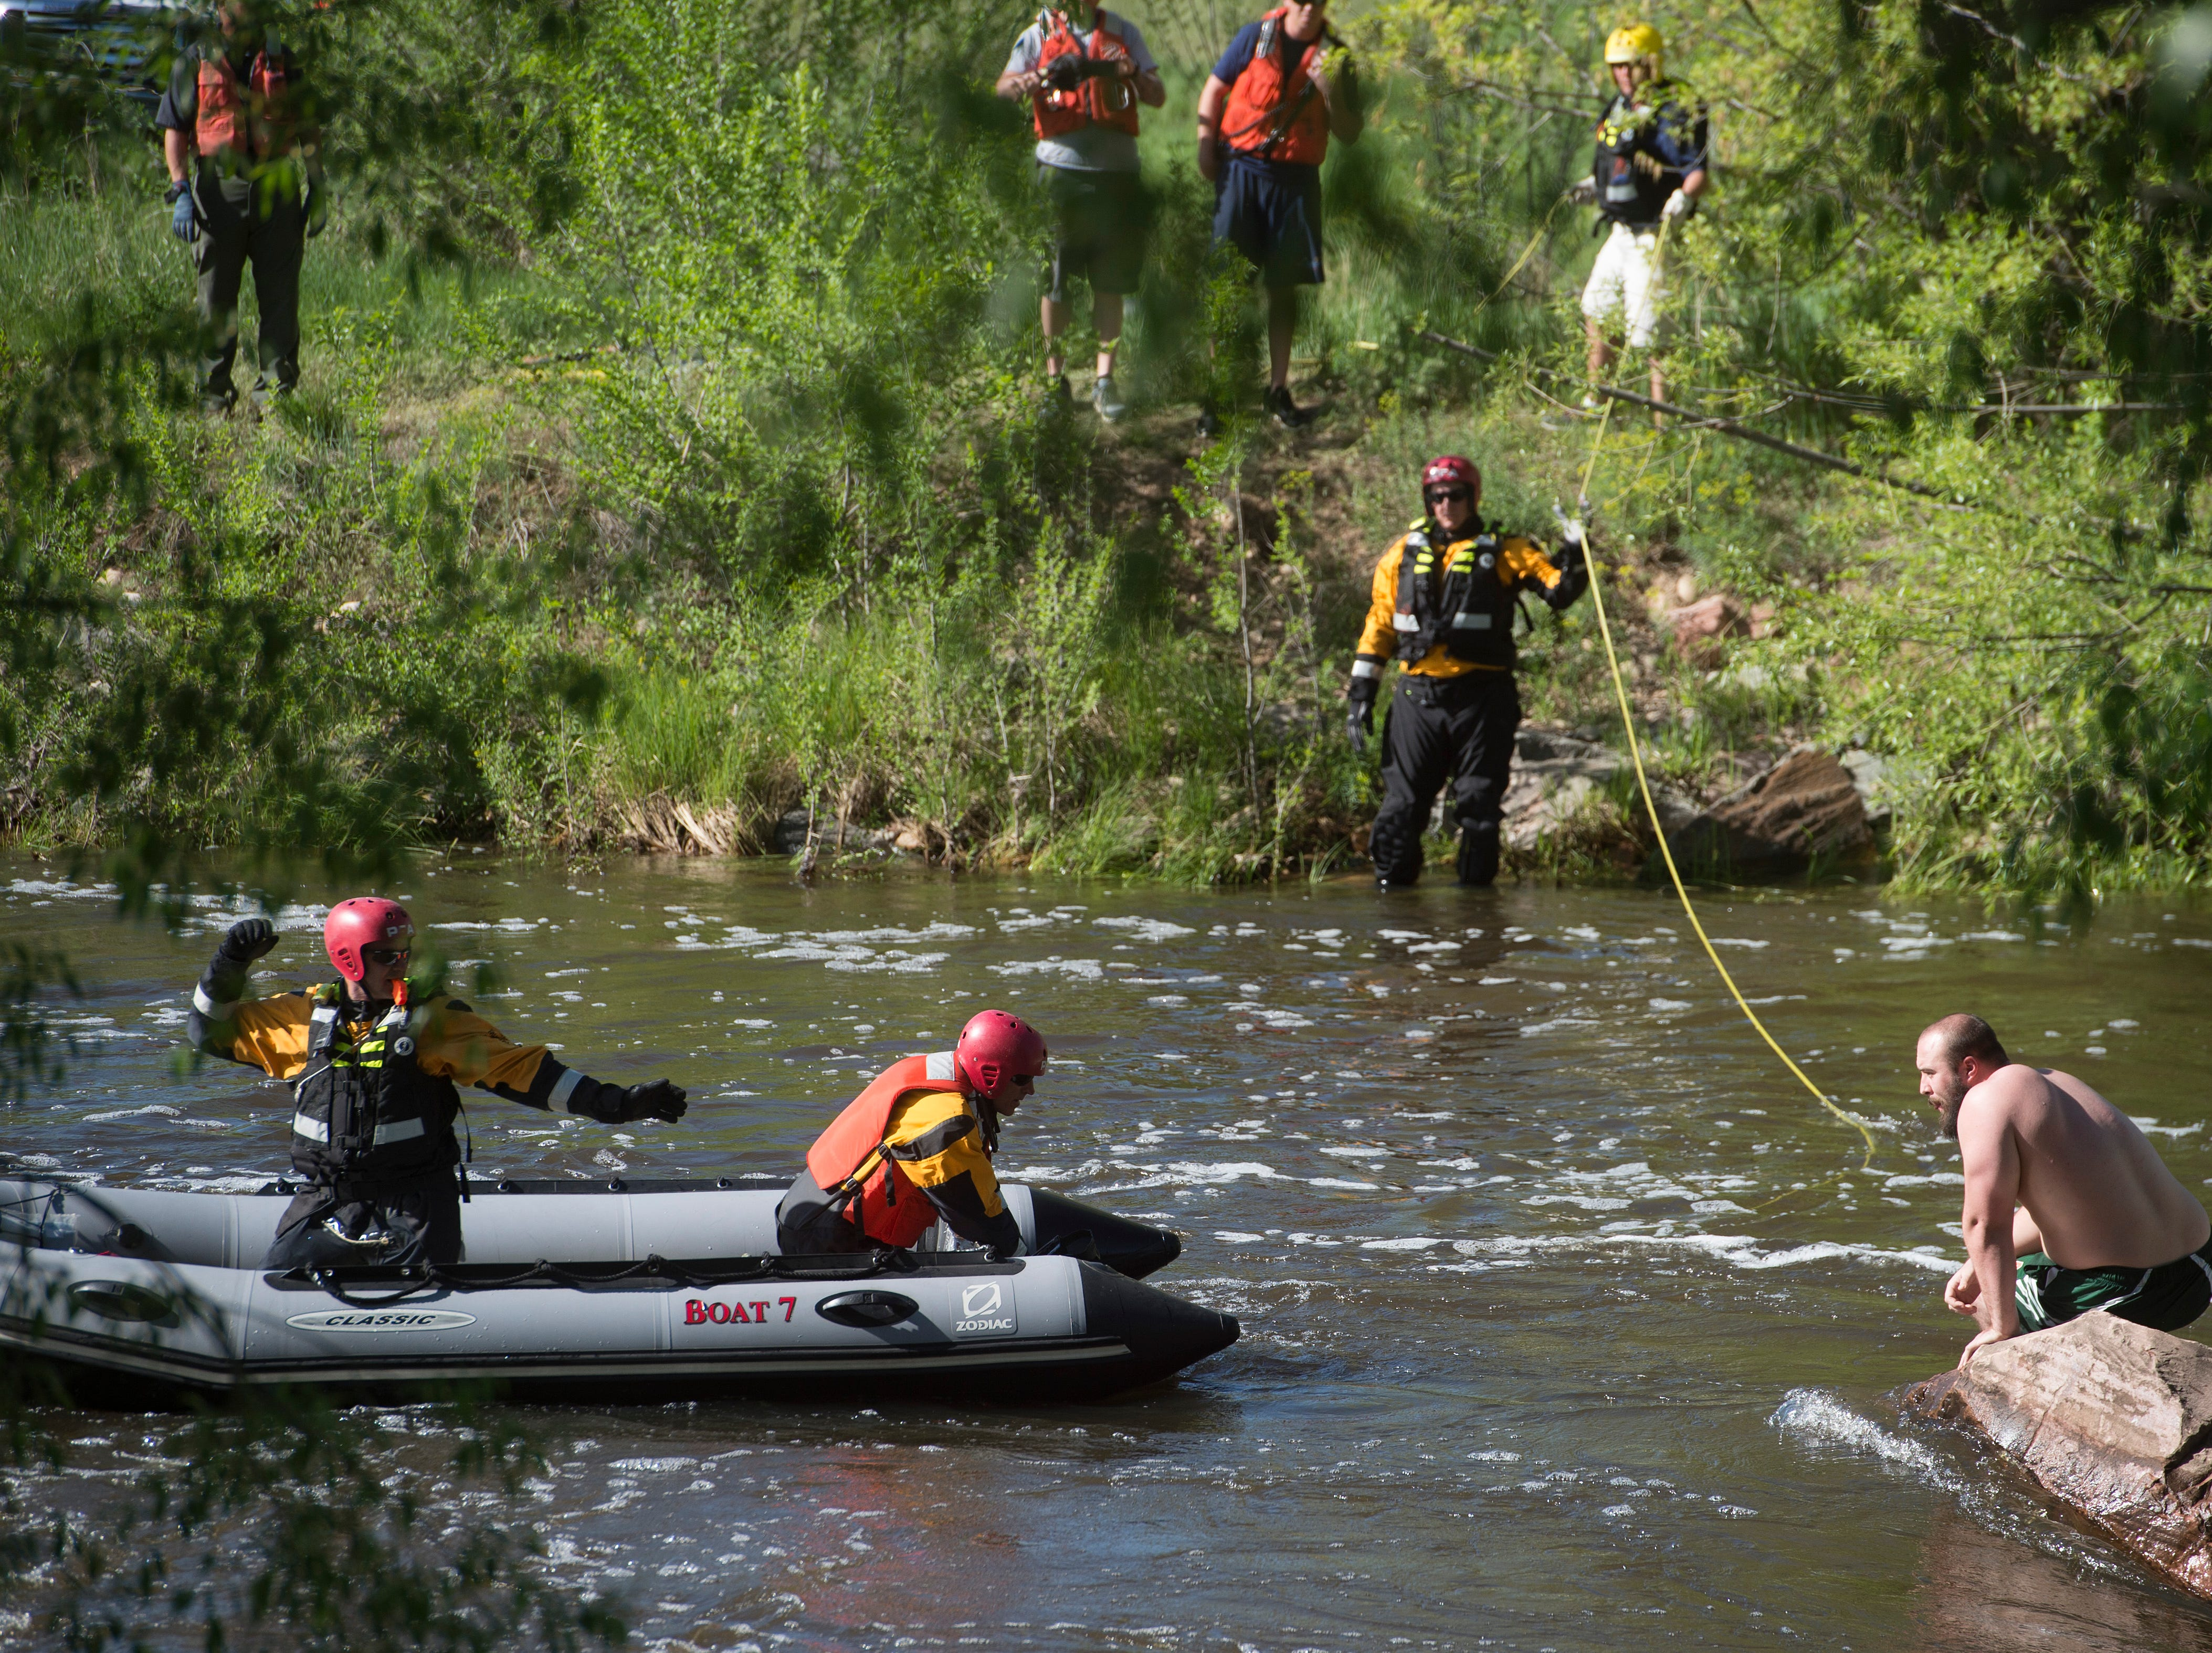 Rescuers inch closer to a man stranded in the middle of fast current on the Poudre River near College Avenue on Wednesday, May 16, 2018.